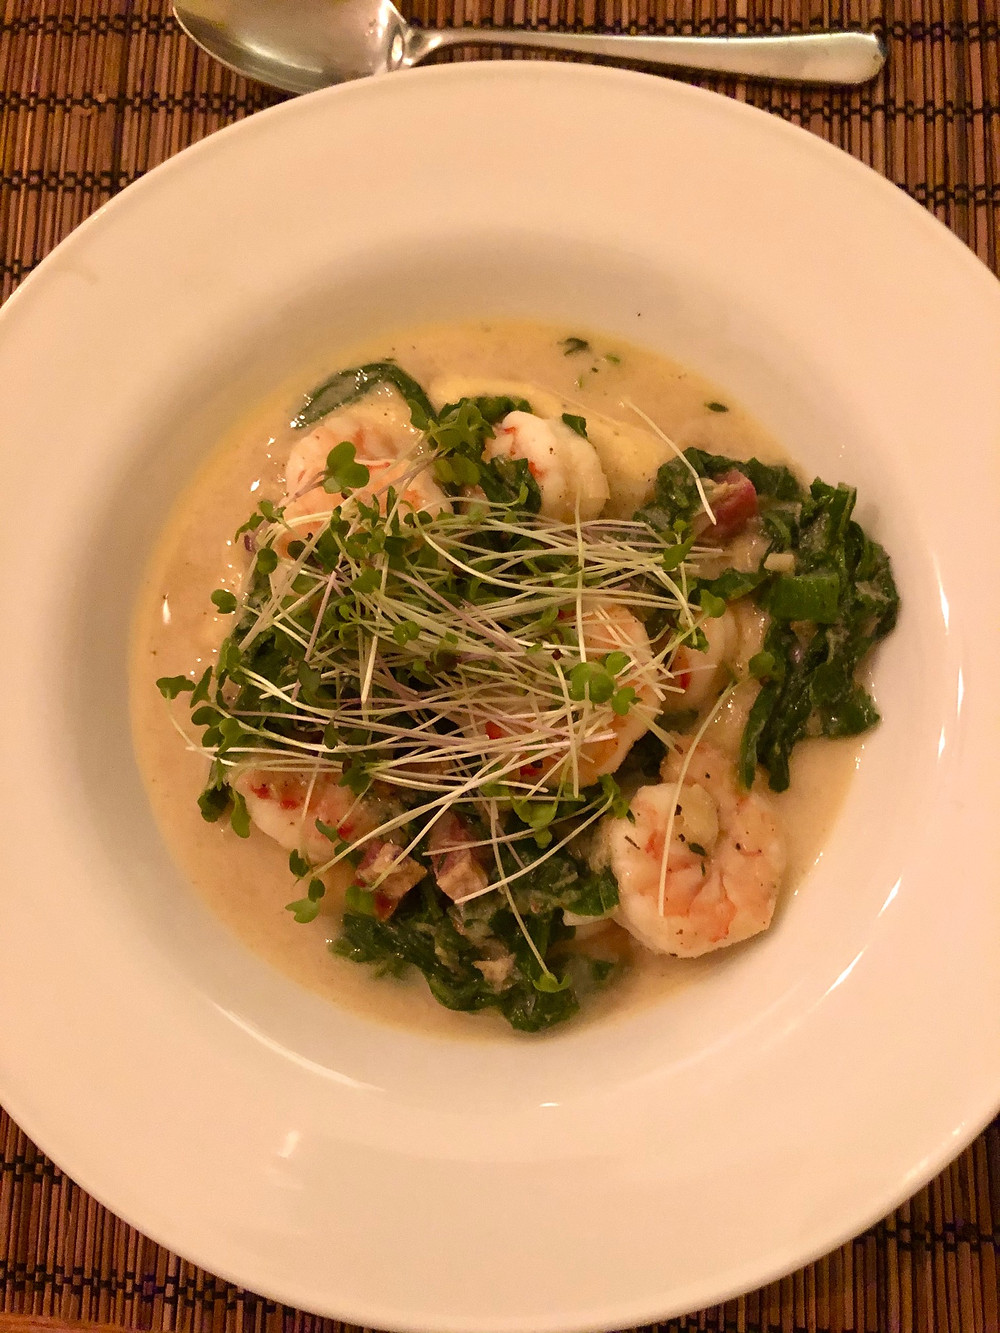 South Carolina Shrimp cooked with turnip green and spring onions over Anson Mills yellow grits